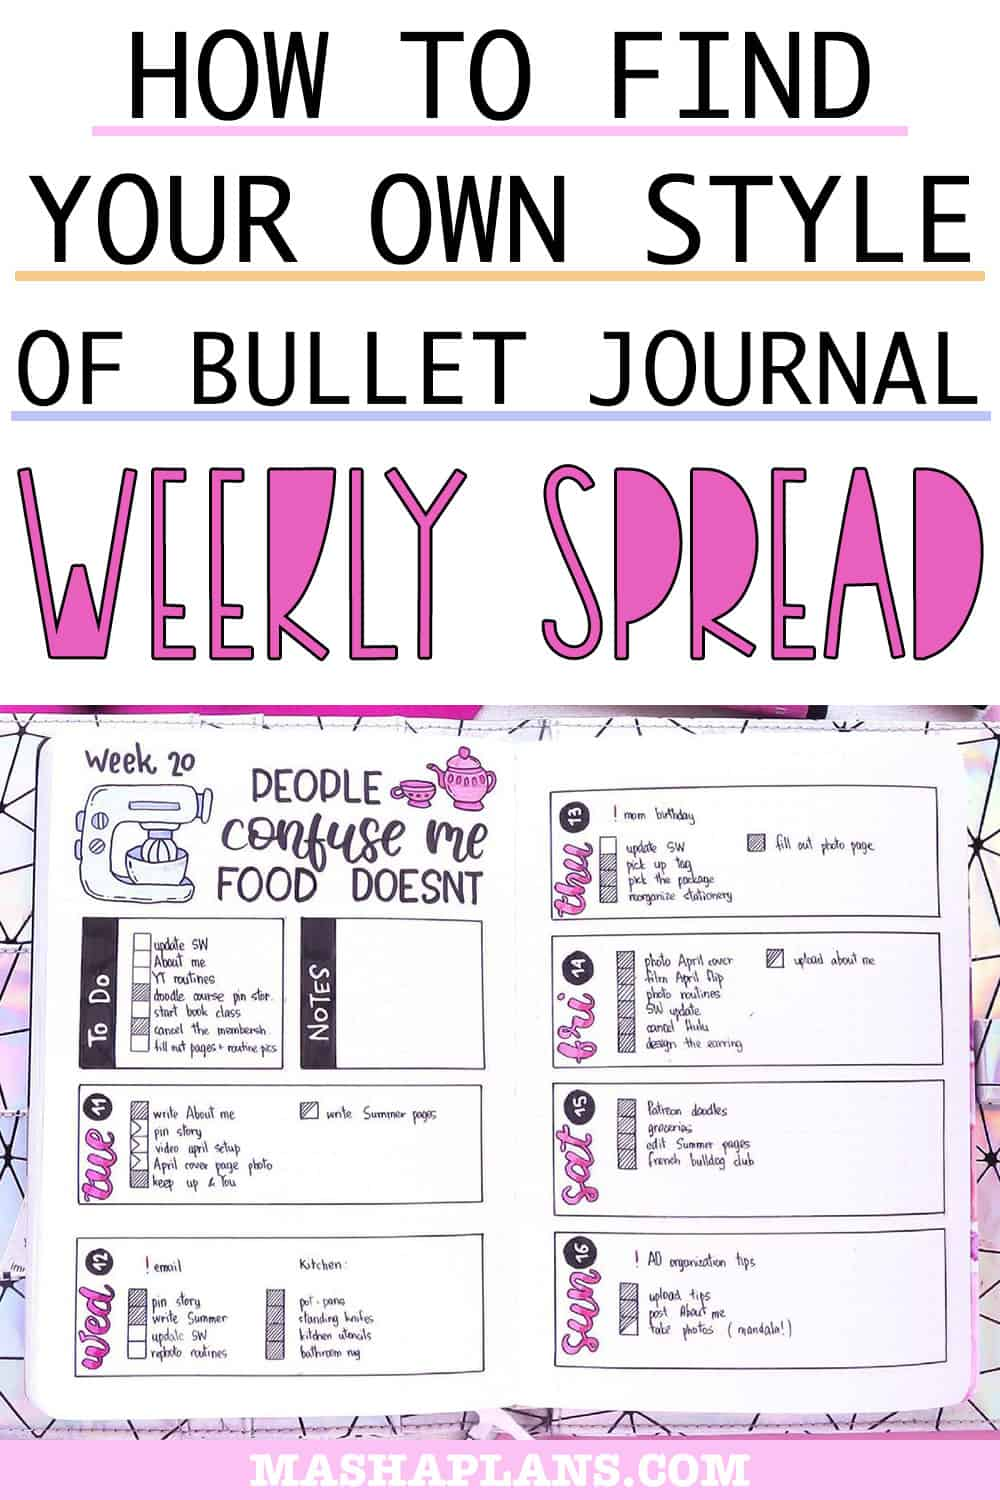 Finding Your Style Of Bullet Journal Weekly Spread   Masha Plans